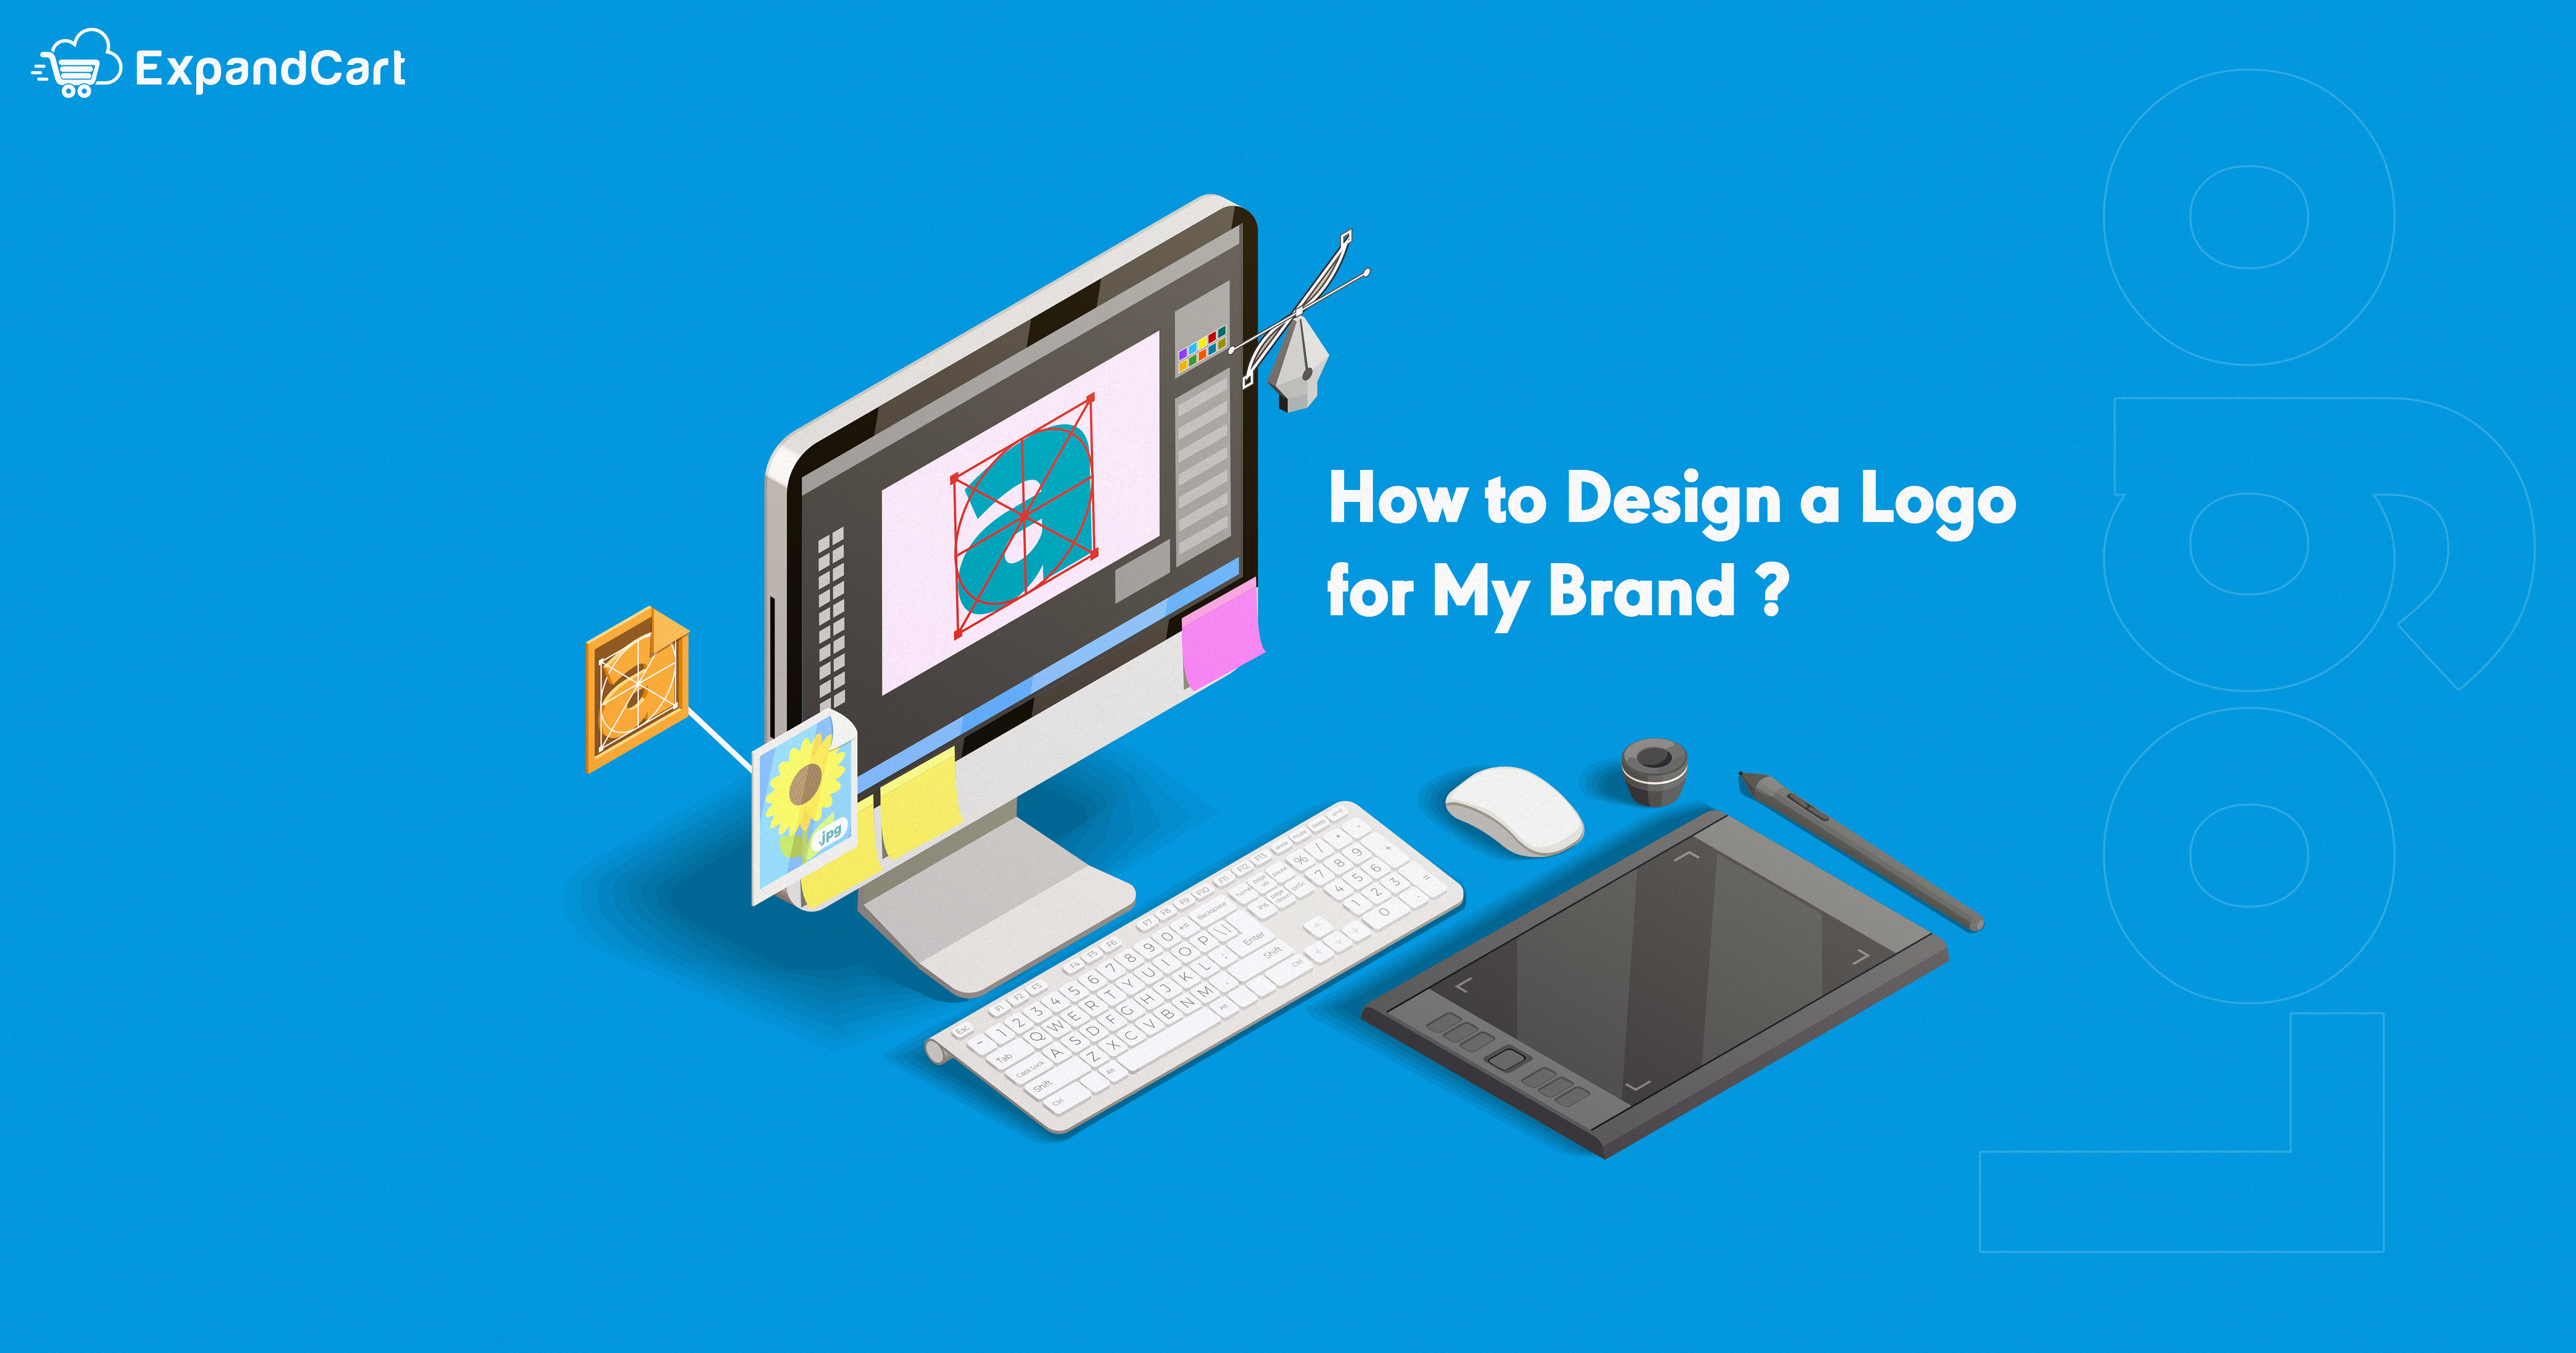 How to Design a Logo for My Brand